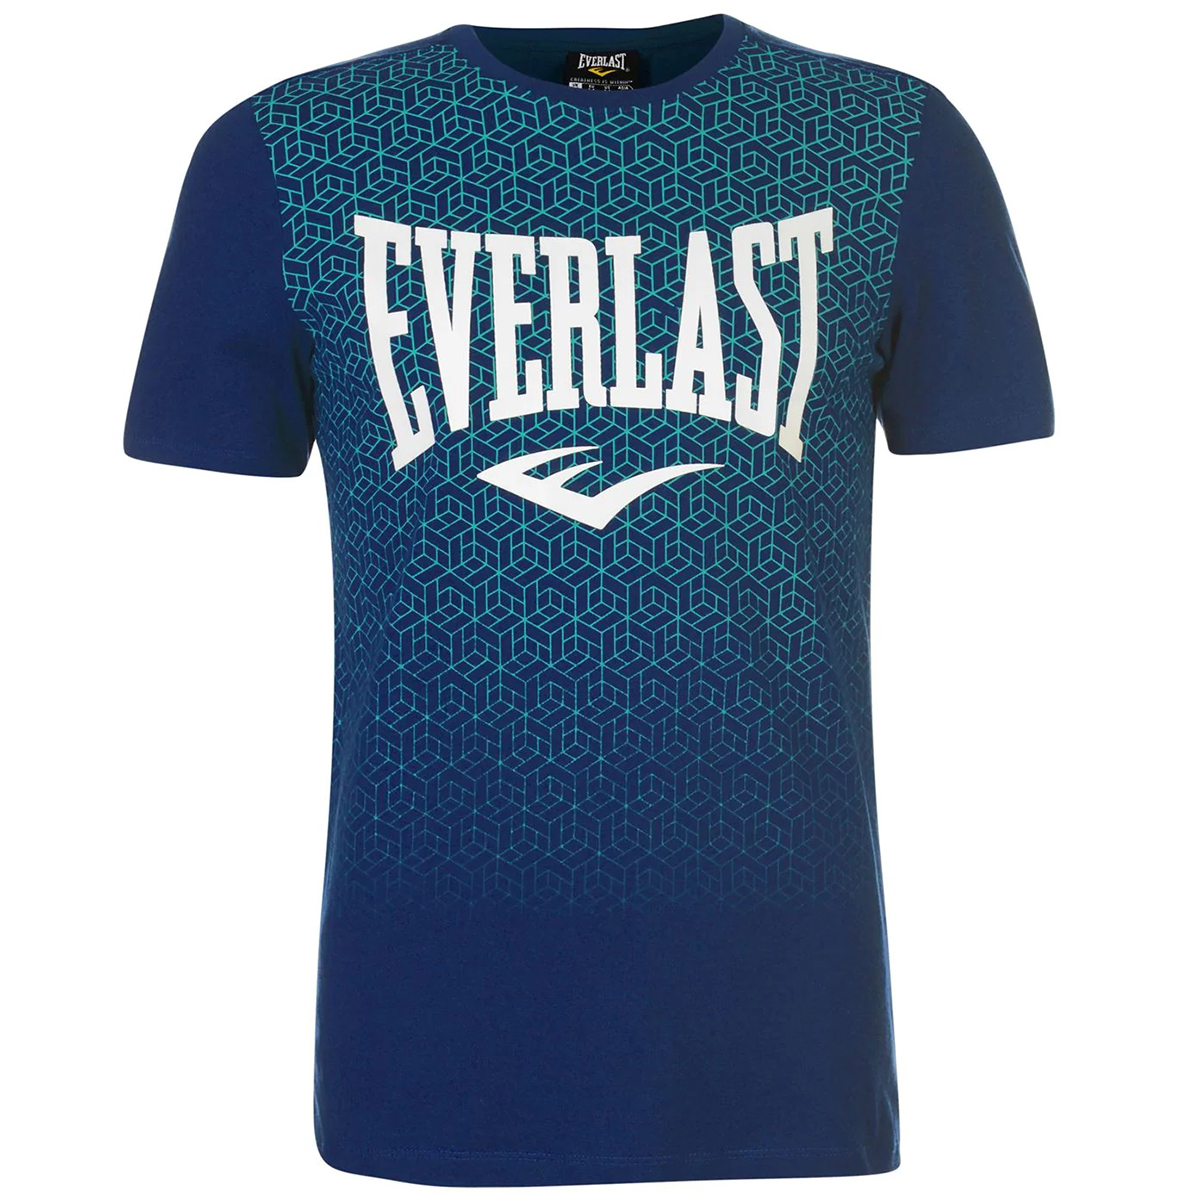 Everlast Men's Geo Print Short-Sleeve Tee - Blue, 4XL